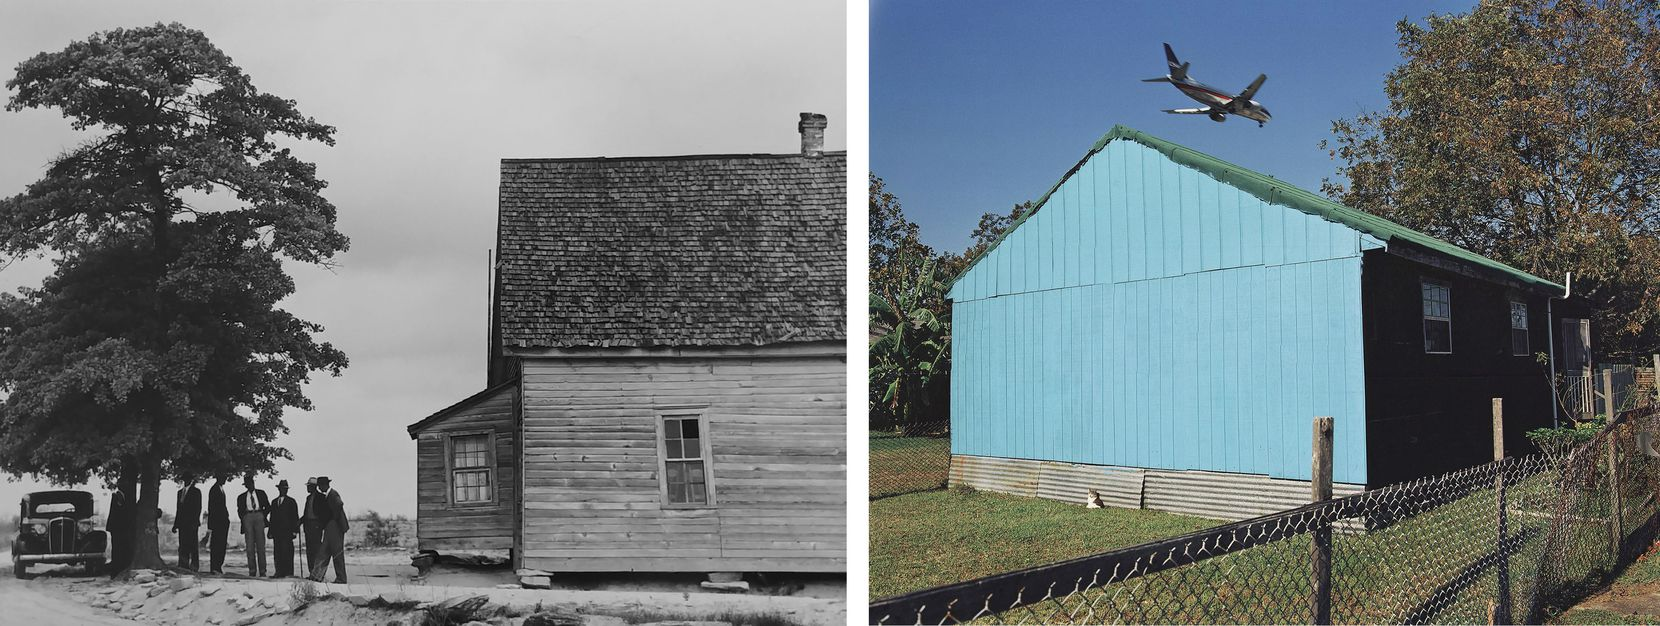 (LEFT) Jack Delano, Untitled, 1940; (RIGHT) William Greiner, Jet Over Blue and Black House, Kenner, La., 1994